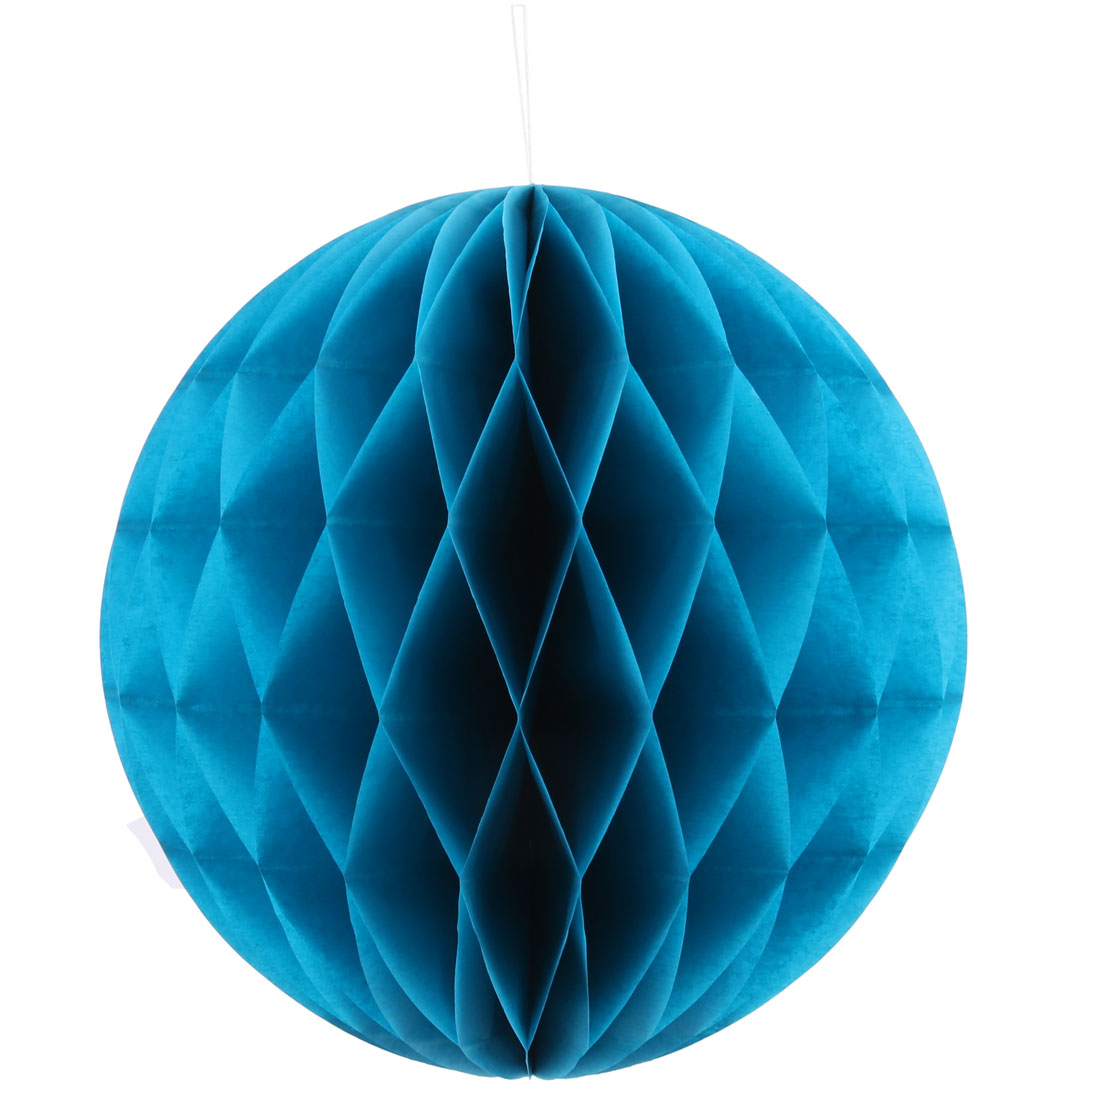 Festival Birthday Paper Foldable String Hanging Lamp Honeycomb Ball Blue 10 Inch Dia